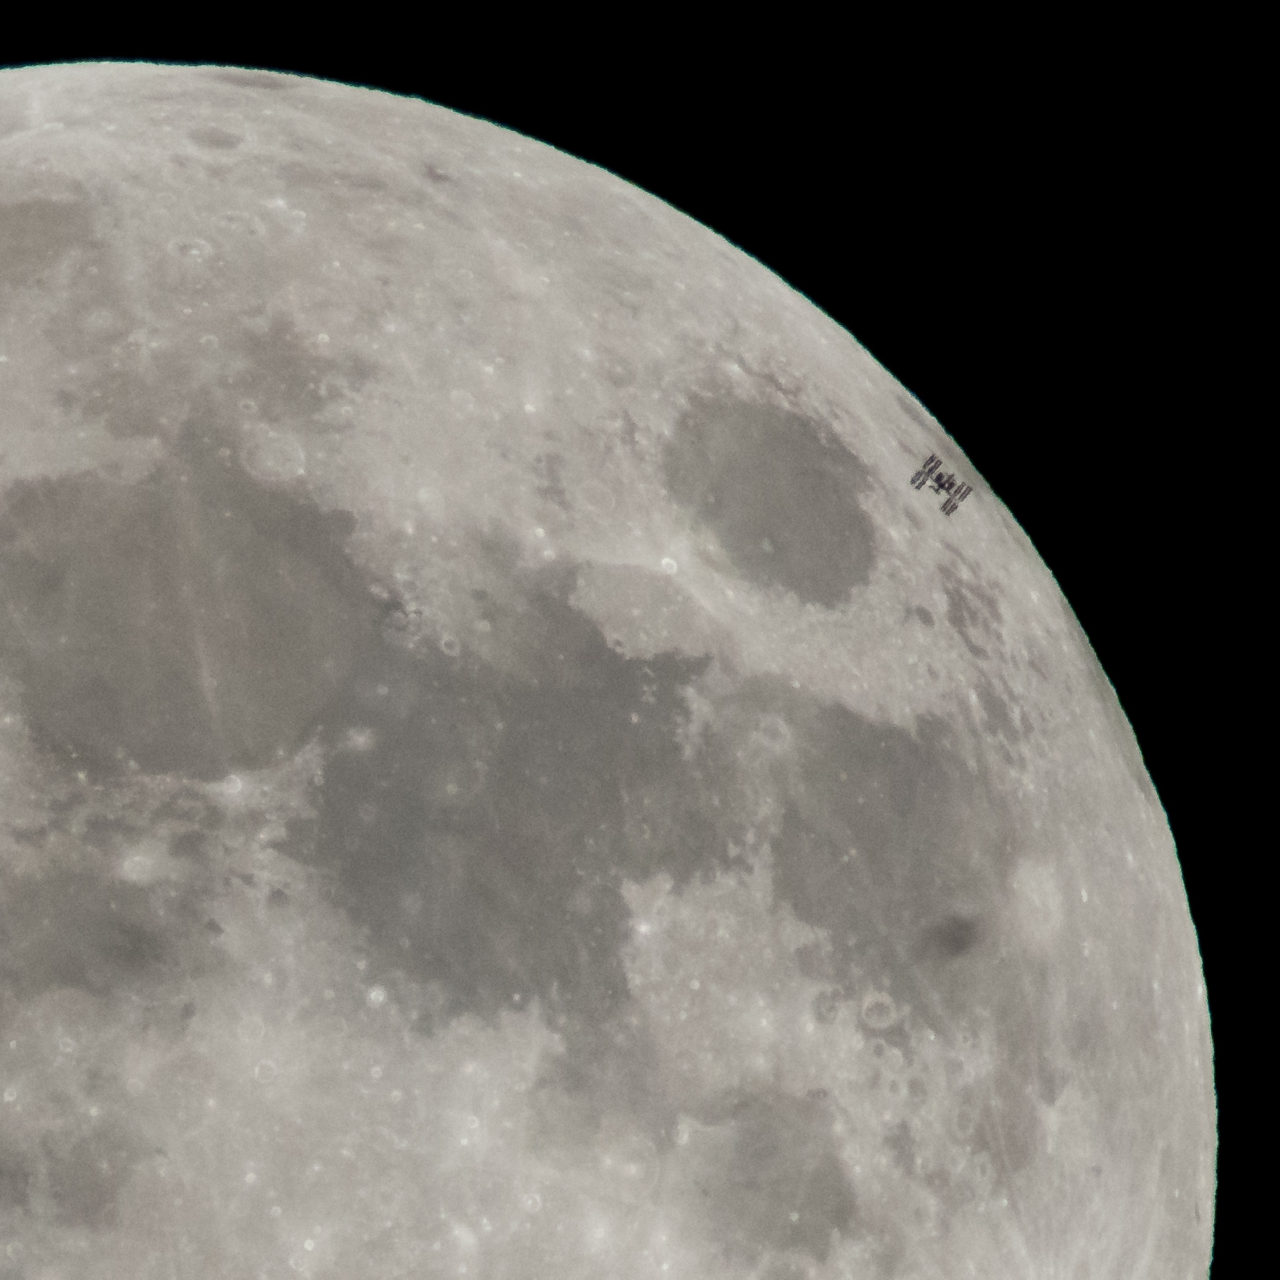 International Space Station Transits the Full Moon – Most Beautiful Picture